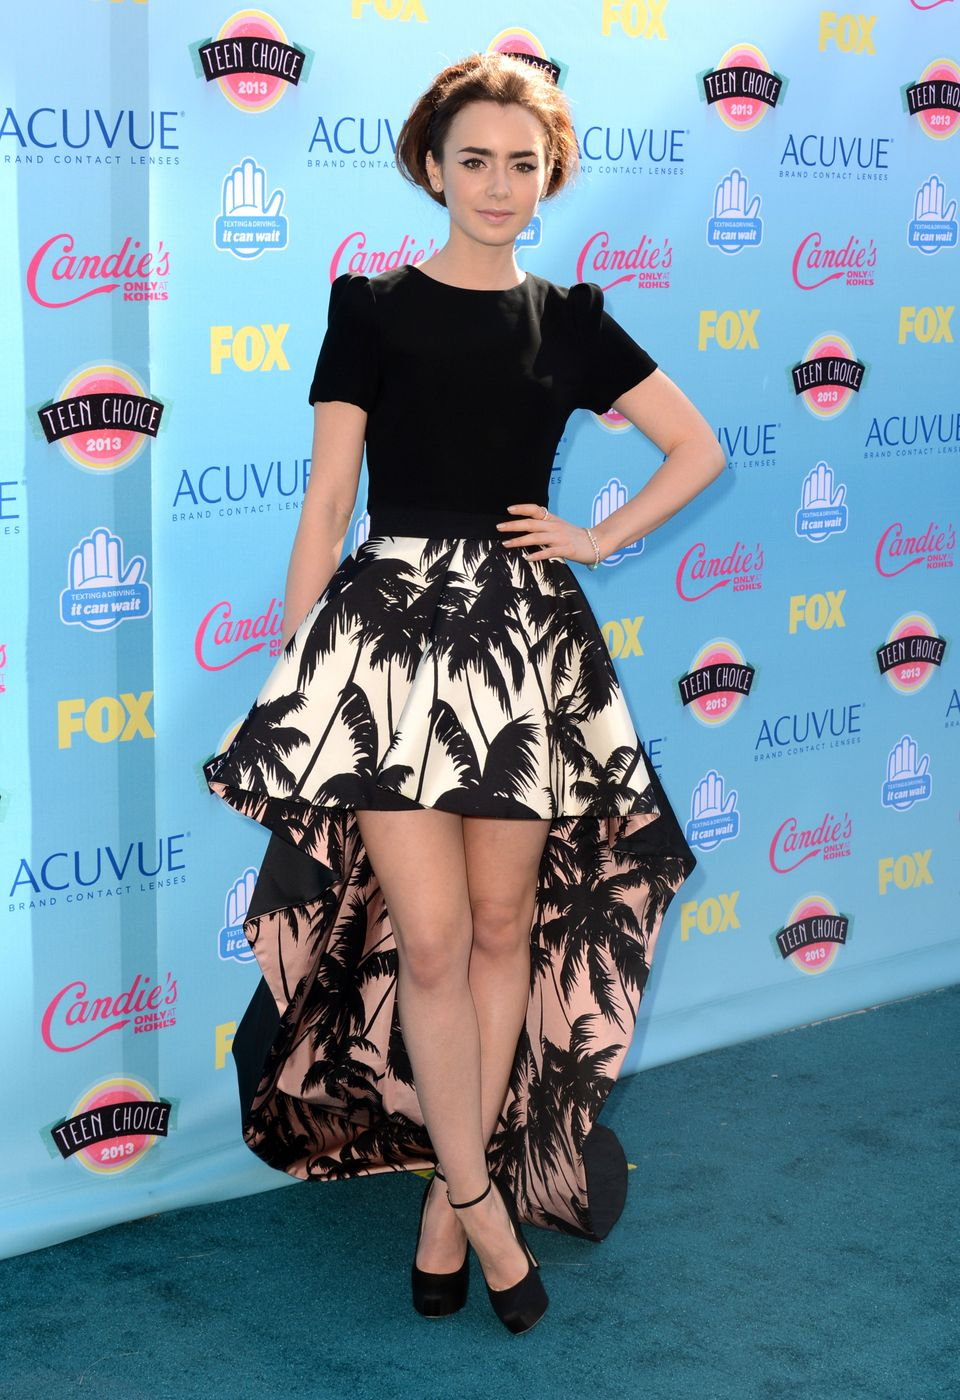 Lily Collins arrives at the Teen Choice Awards at the Gibson Amphitheater on Sunday, Aug. 11, 2013, in Los Angeles. (Photo by